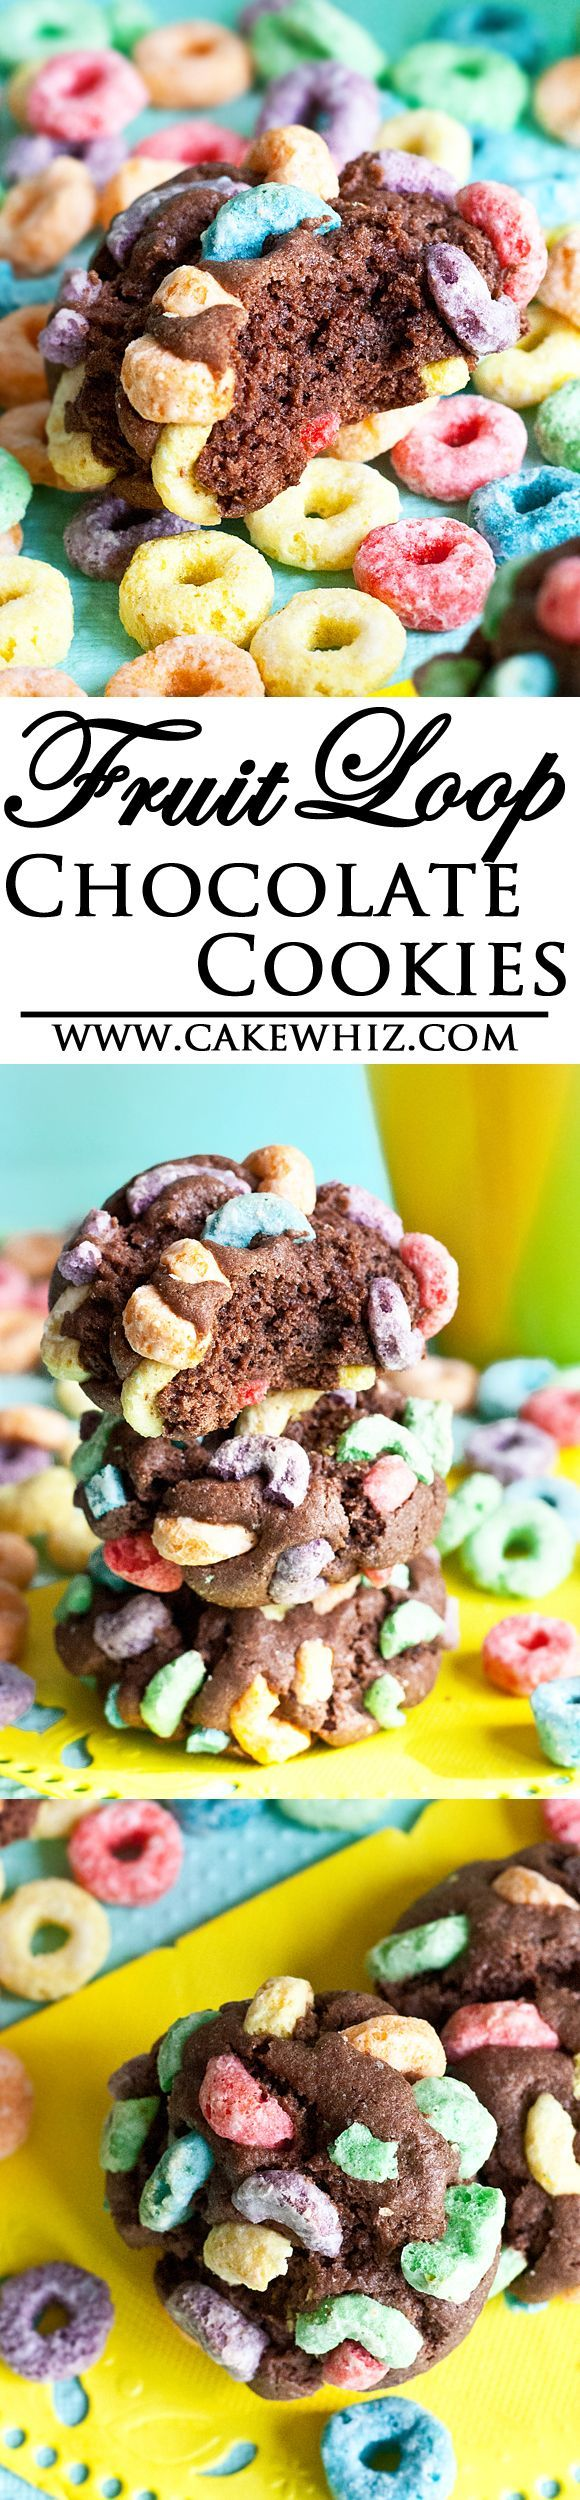 FRUIT LOOPS chocolate cookies... Rich, choco-licious cookies with a crunchy and fruity cereal top. From cakewhiz.com